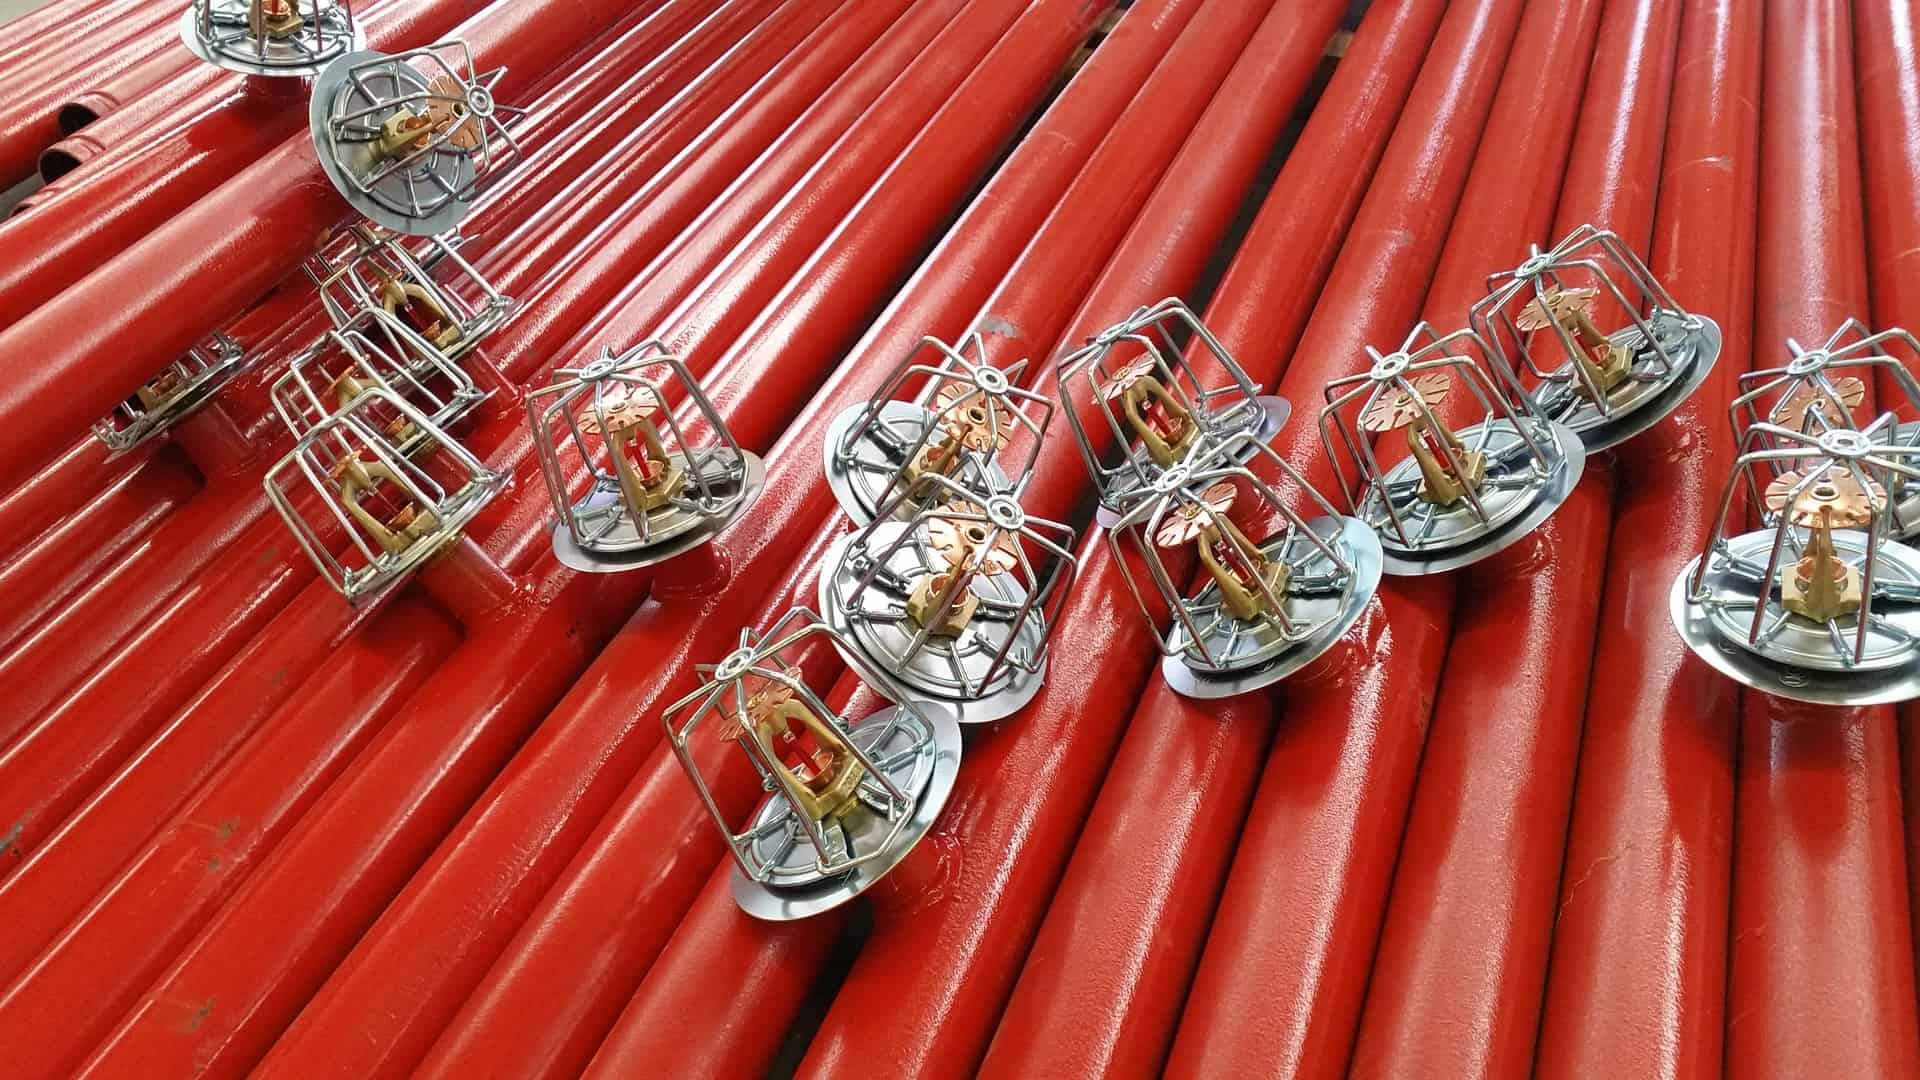 Read more about the article Install Active Fire Protection – Sprinkler Systems